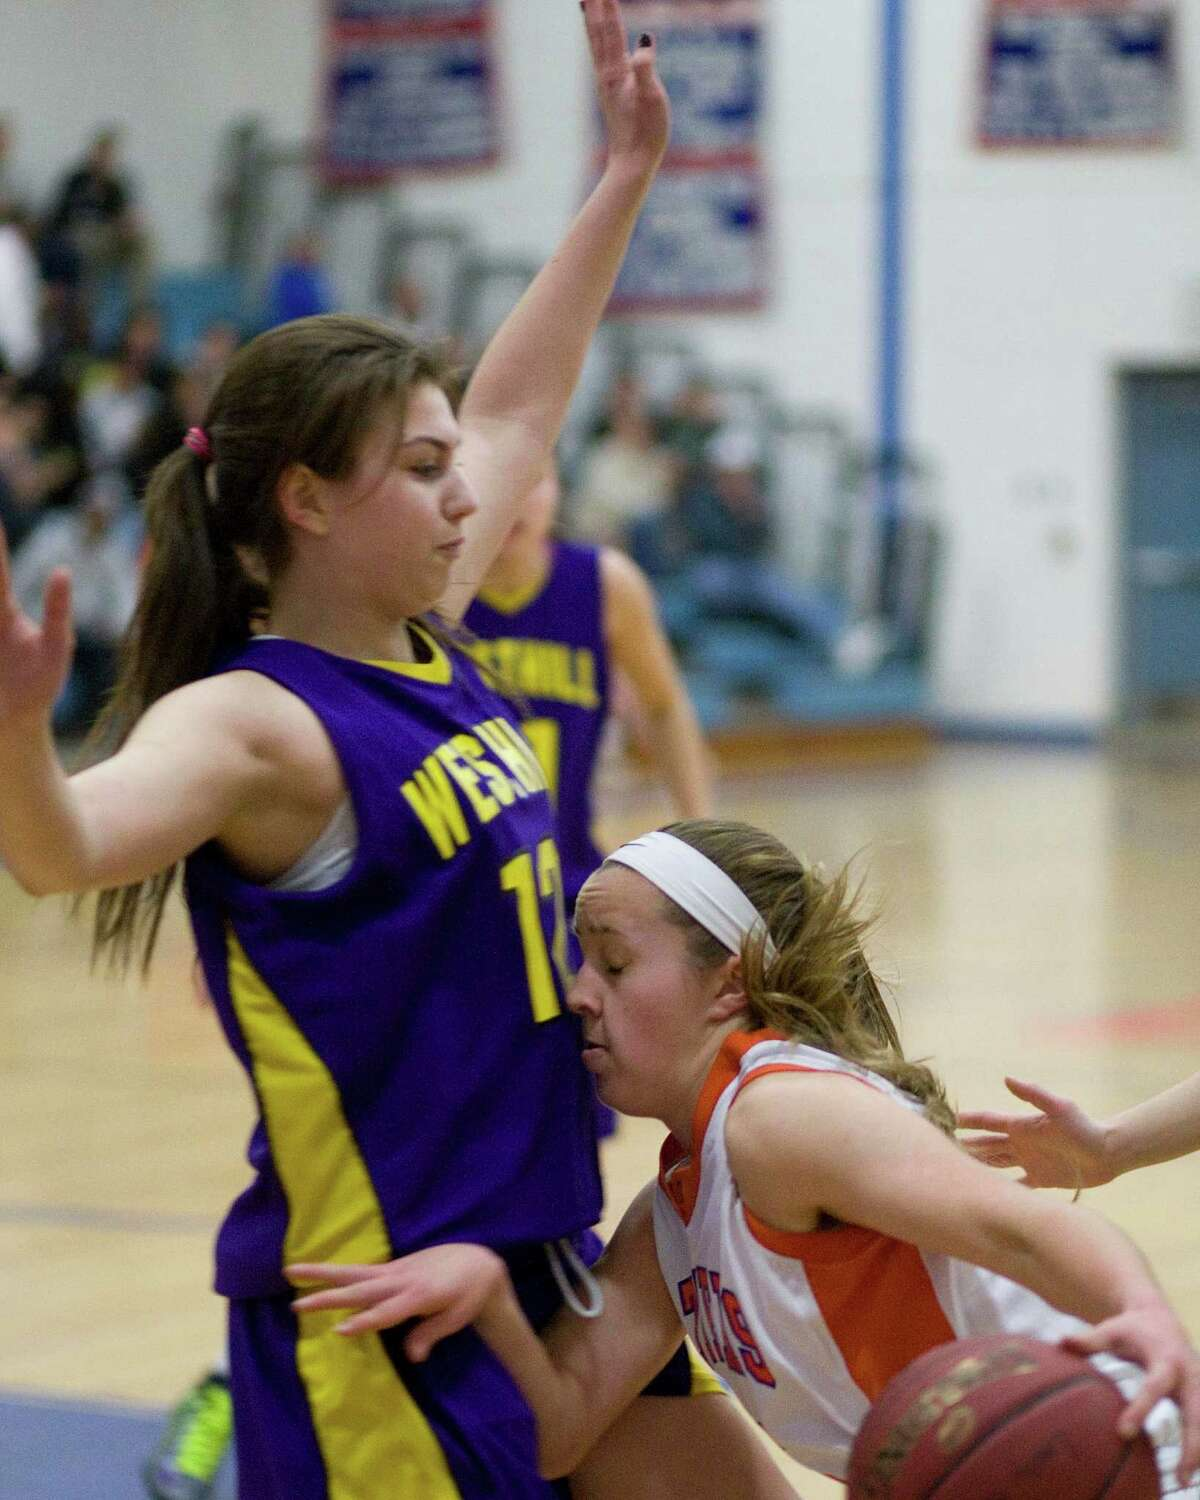 Danbury's Rebecca Gartner, right, hits a defensive wall while trying to drive against Westhill Tuesday night at Danbury High.